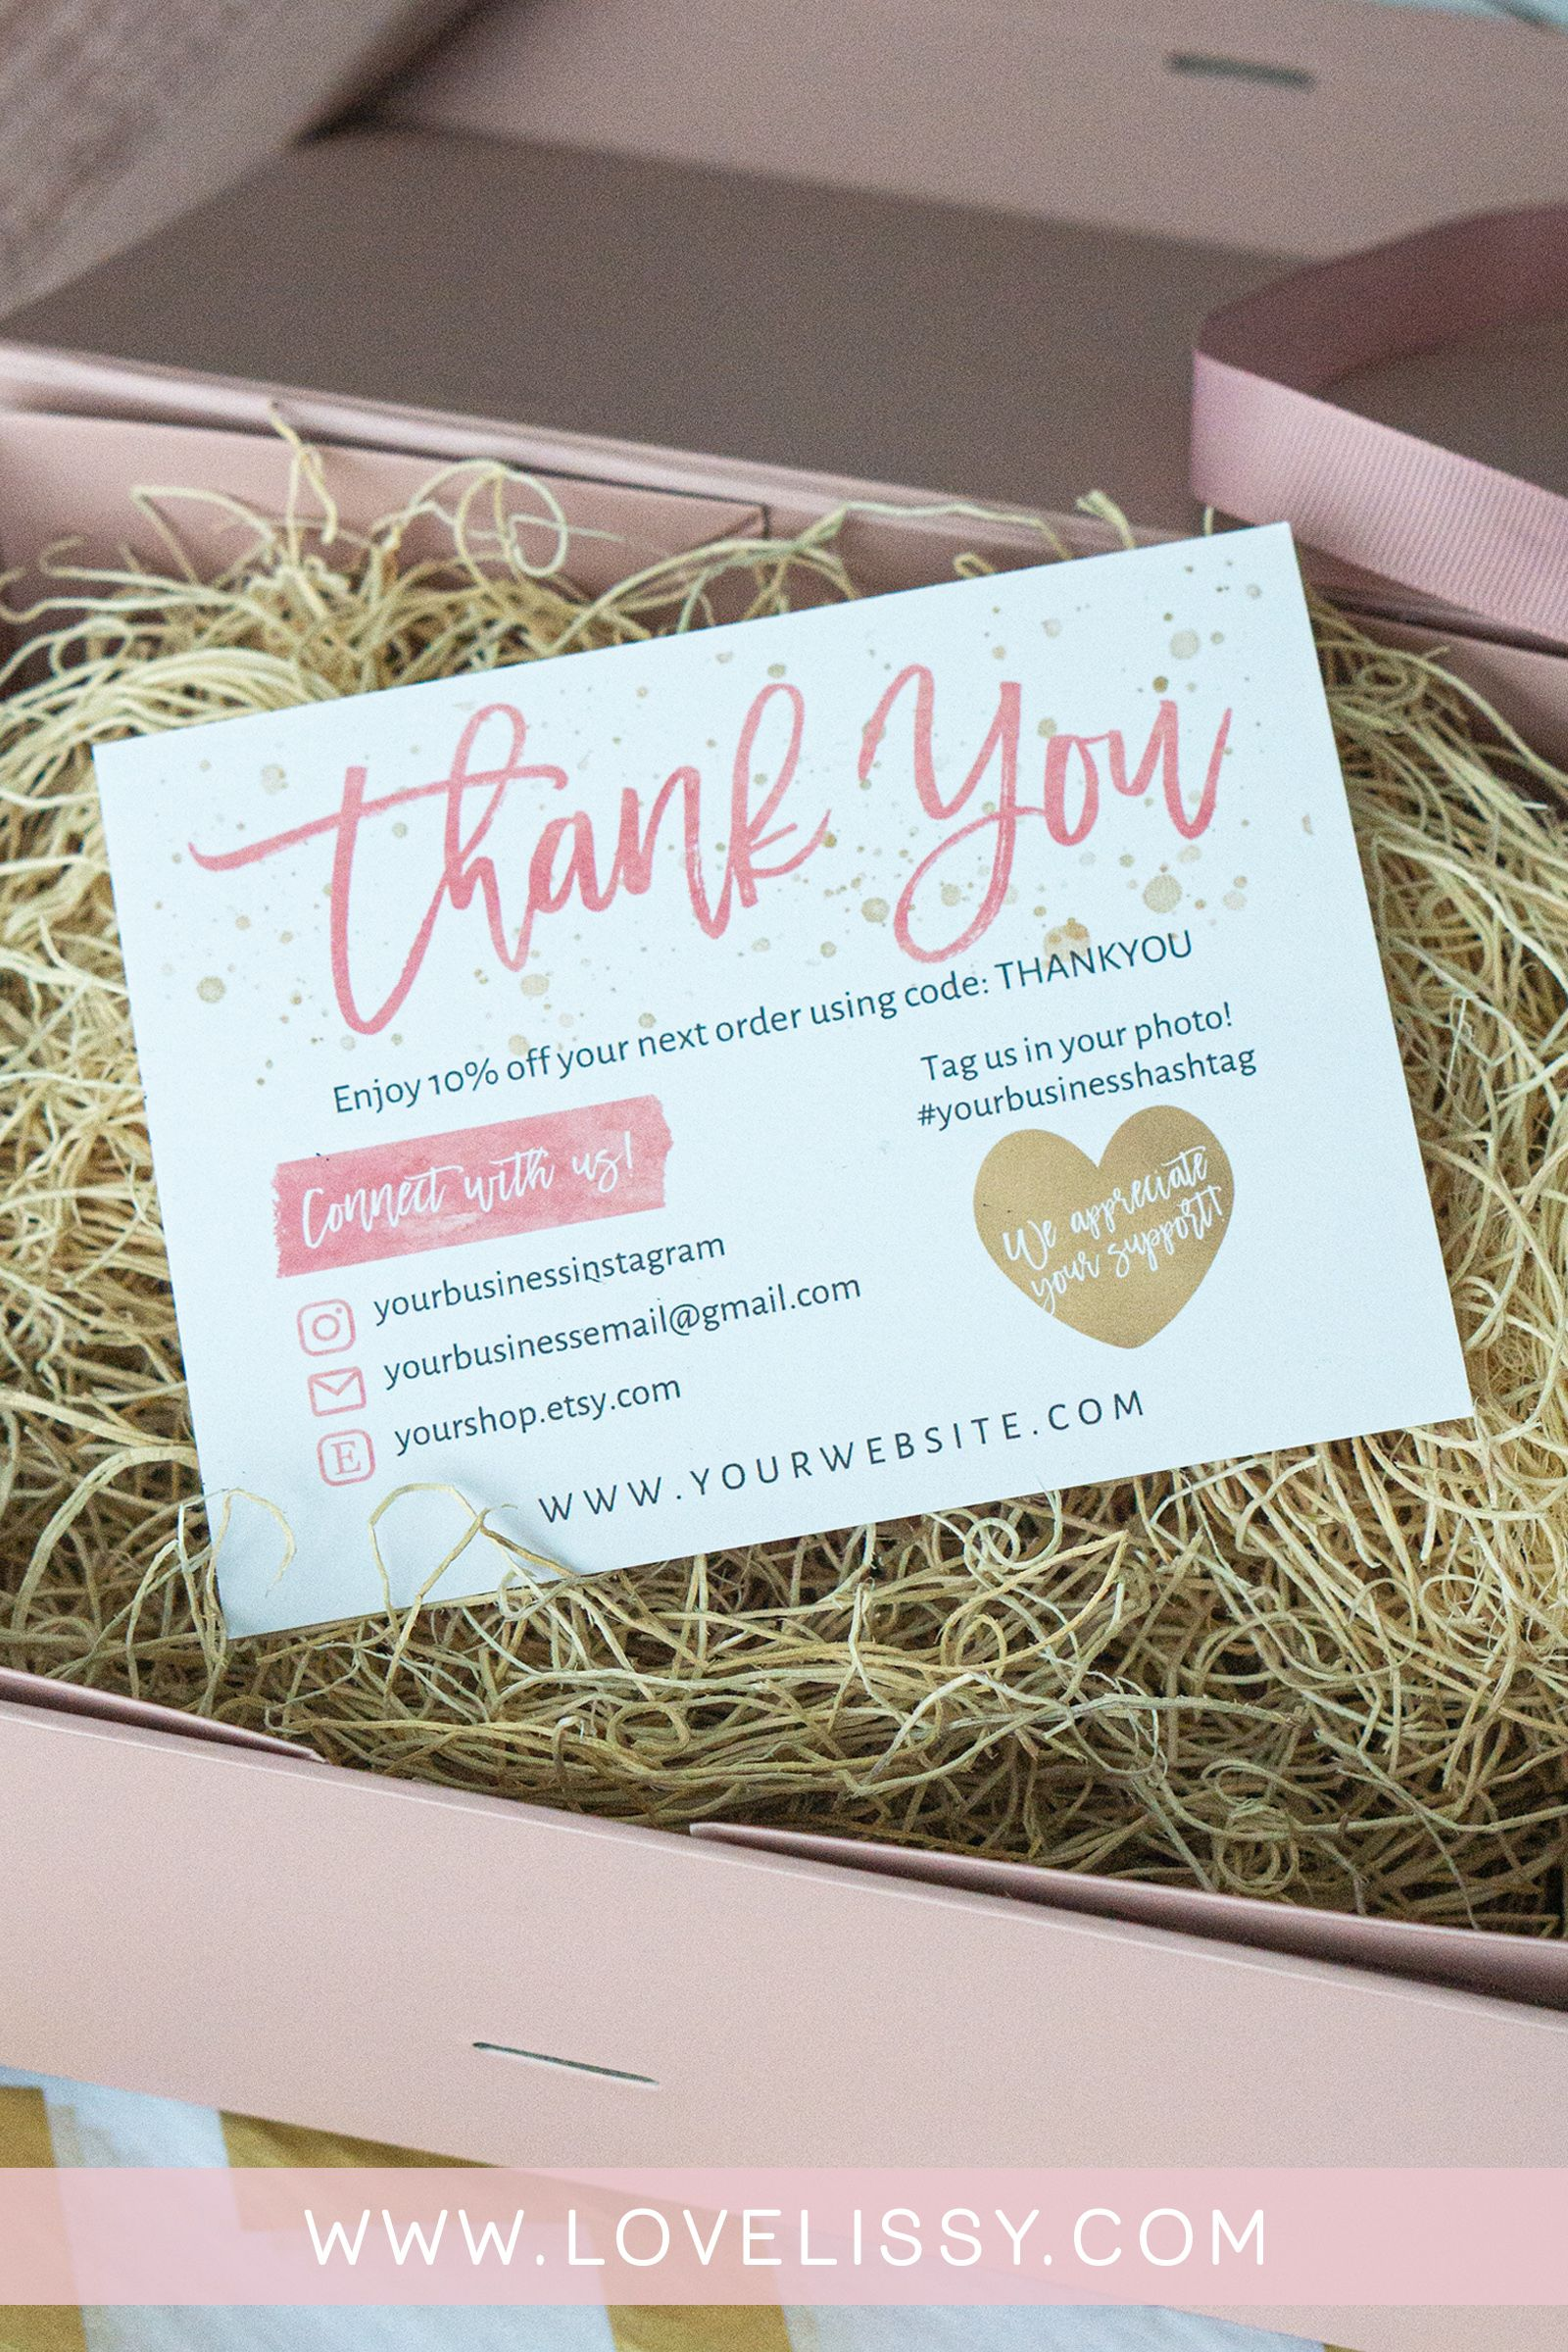 Diy Marketing Ideas For Etsy Sellers That Want To Take Their Etsy Packaging To The Next Level Diy Etsy Packaging Small Business Cards Business Thank You Cards